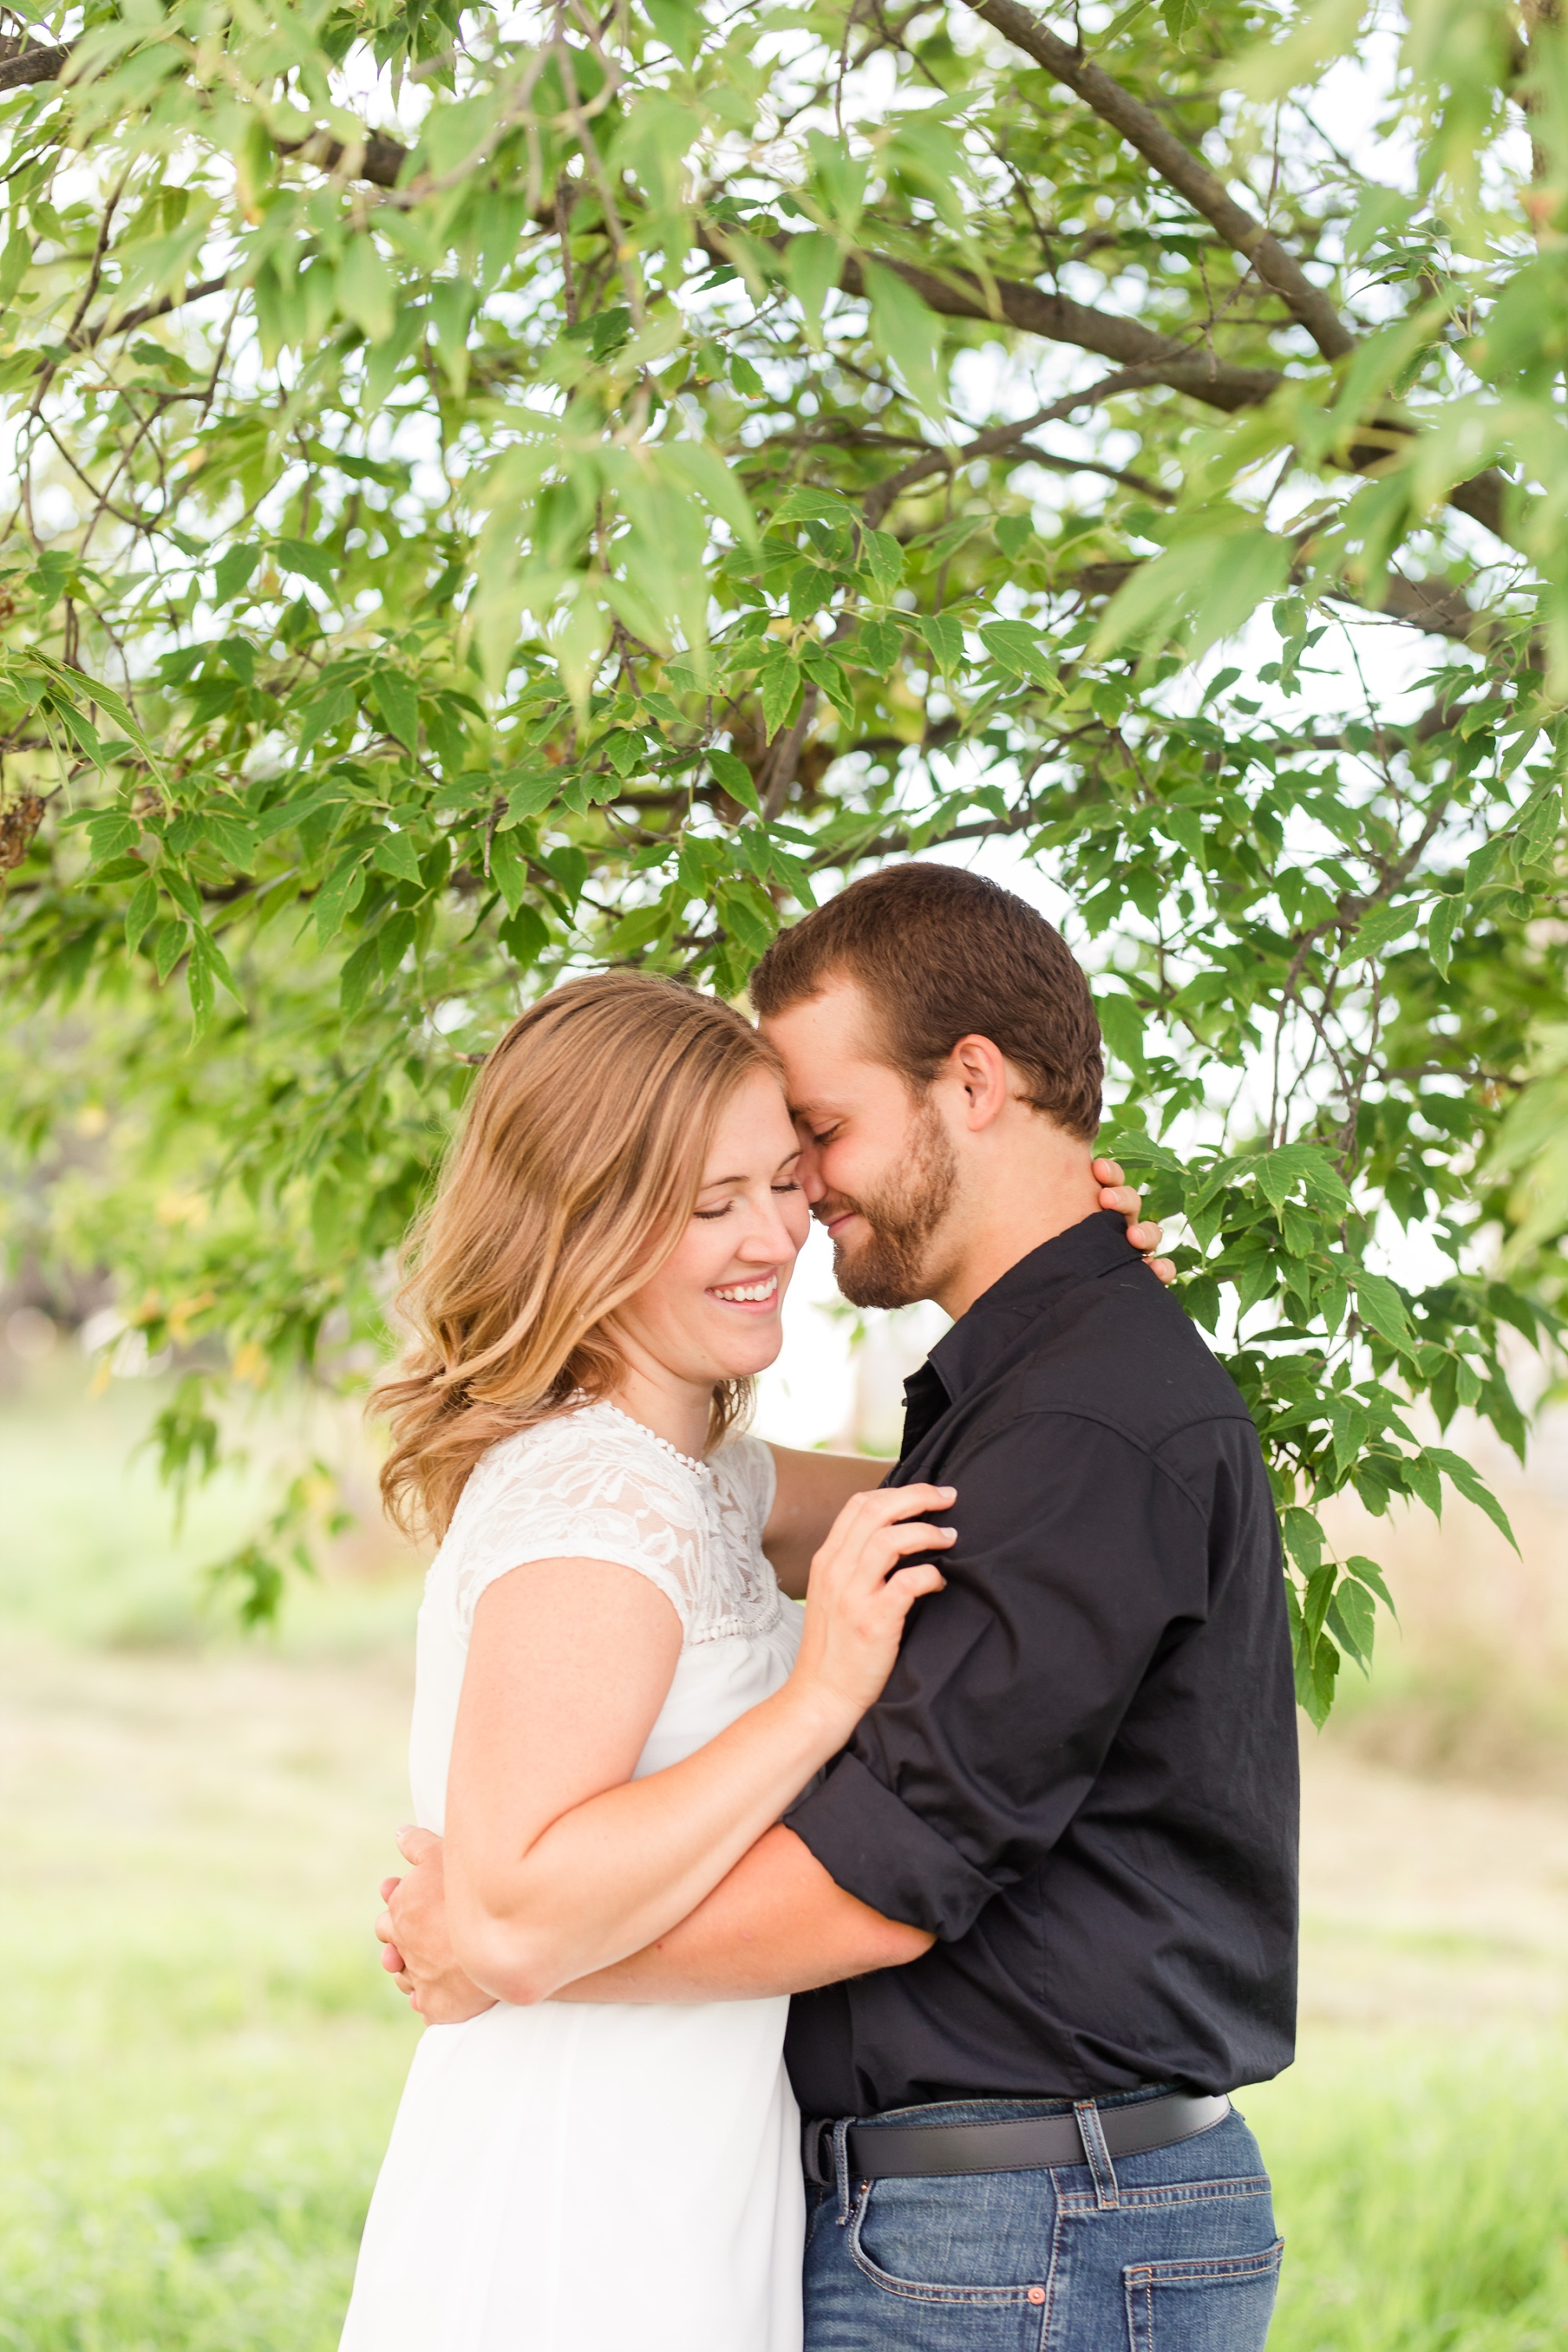 AmberLangerudPhotography_Countryside Engagement Session in Minnesota_3094.jpg